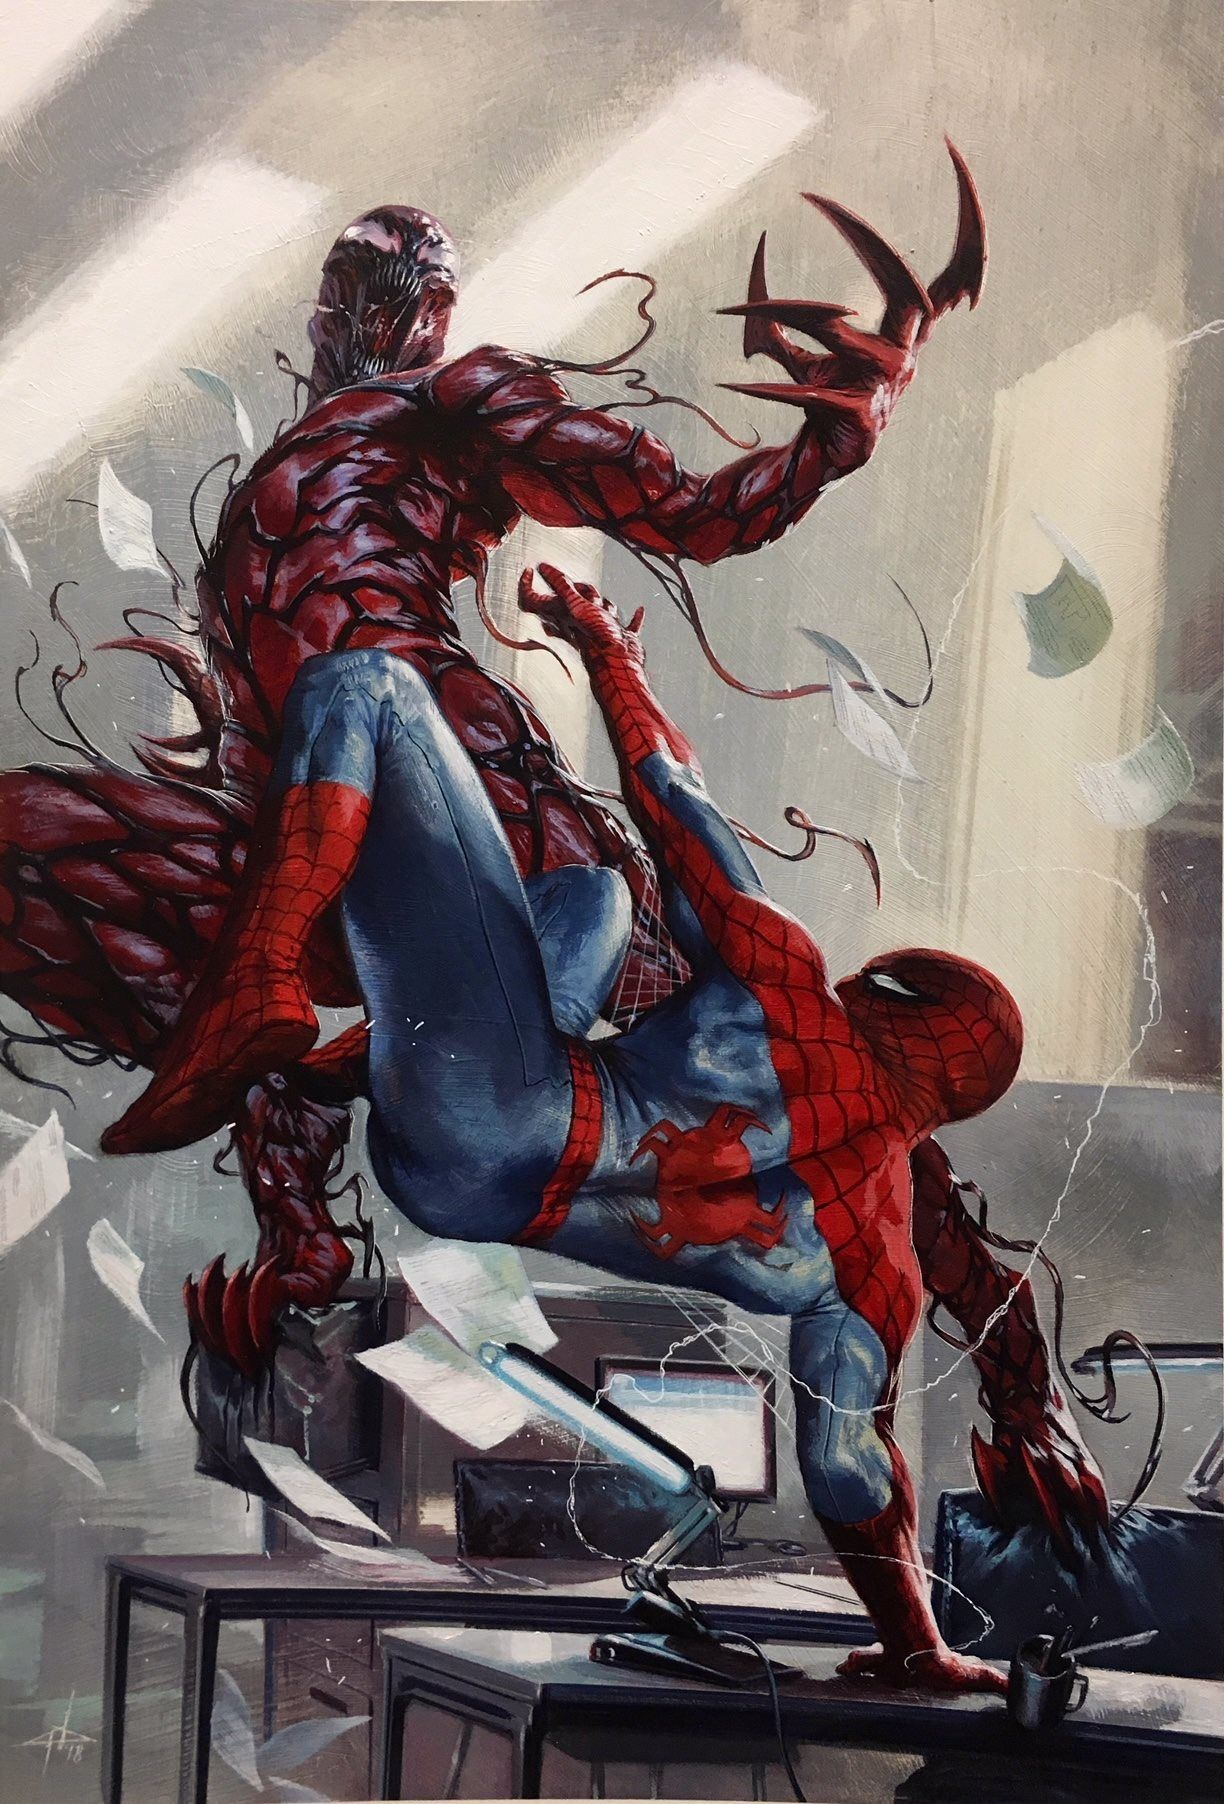 Amazing Spider-Man #1 MARVEL Comics 2018 NM Cheung Variant Cover